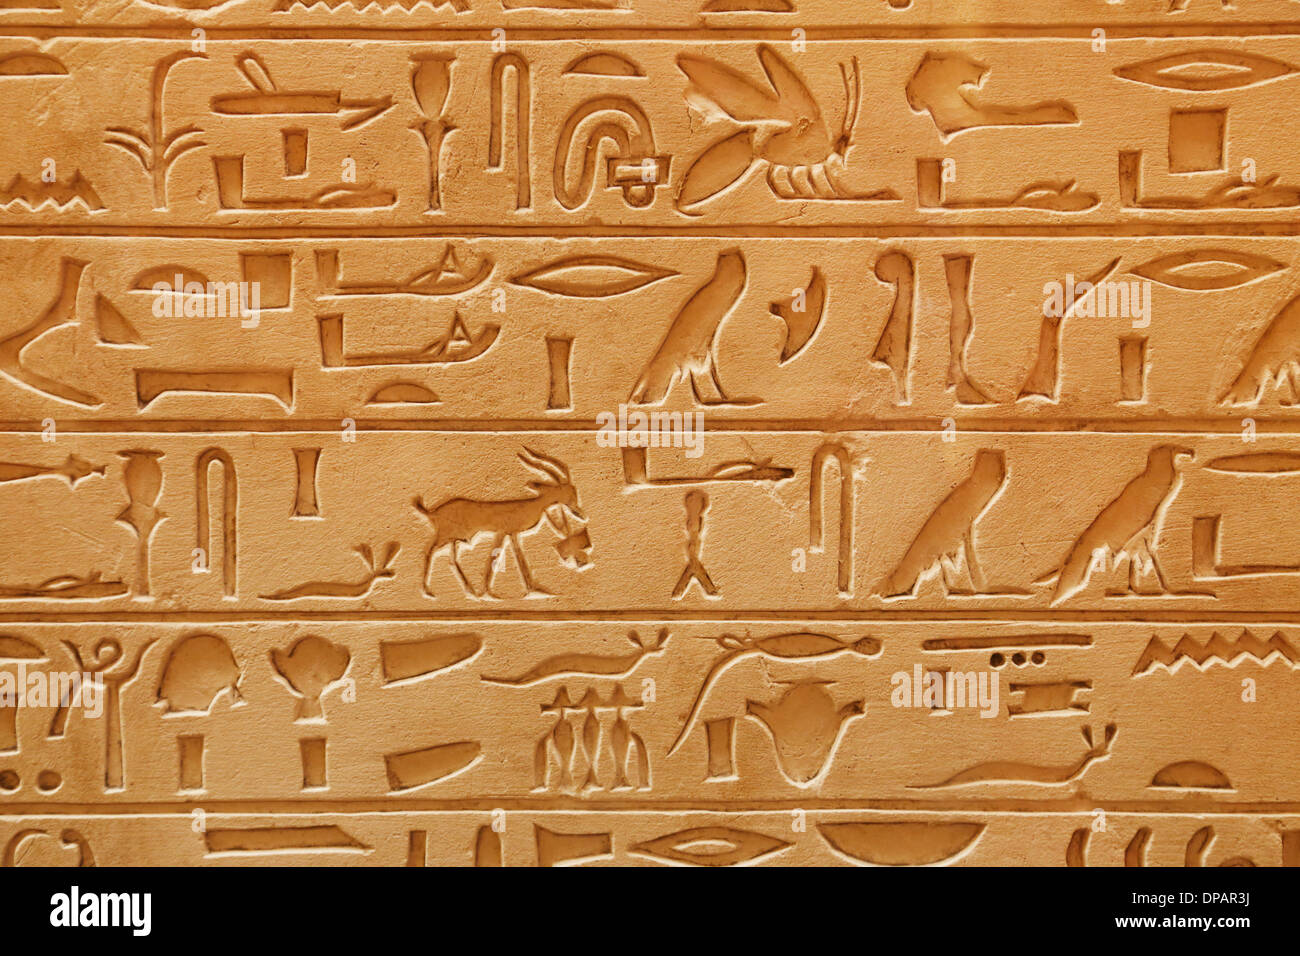 An old Egyptian pictorial writing on a sandstone - Stock Image